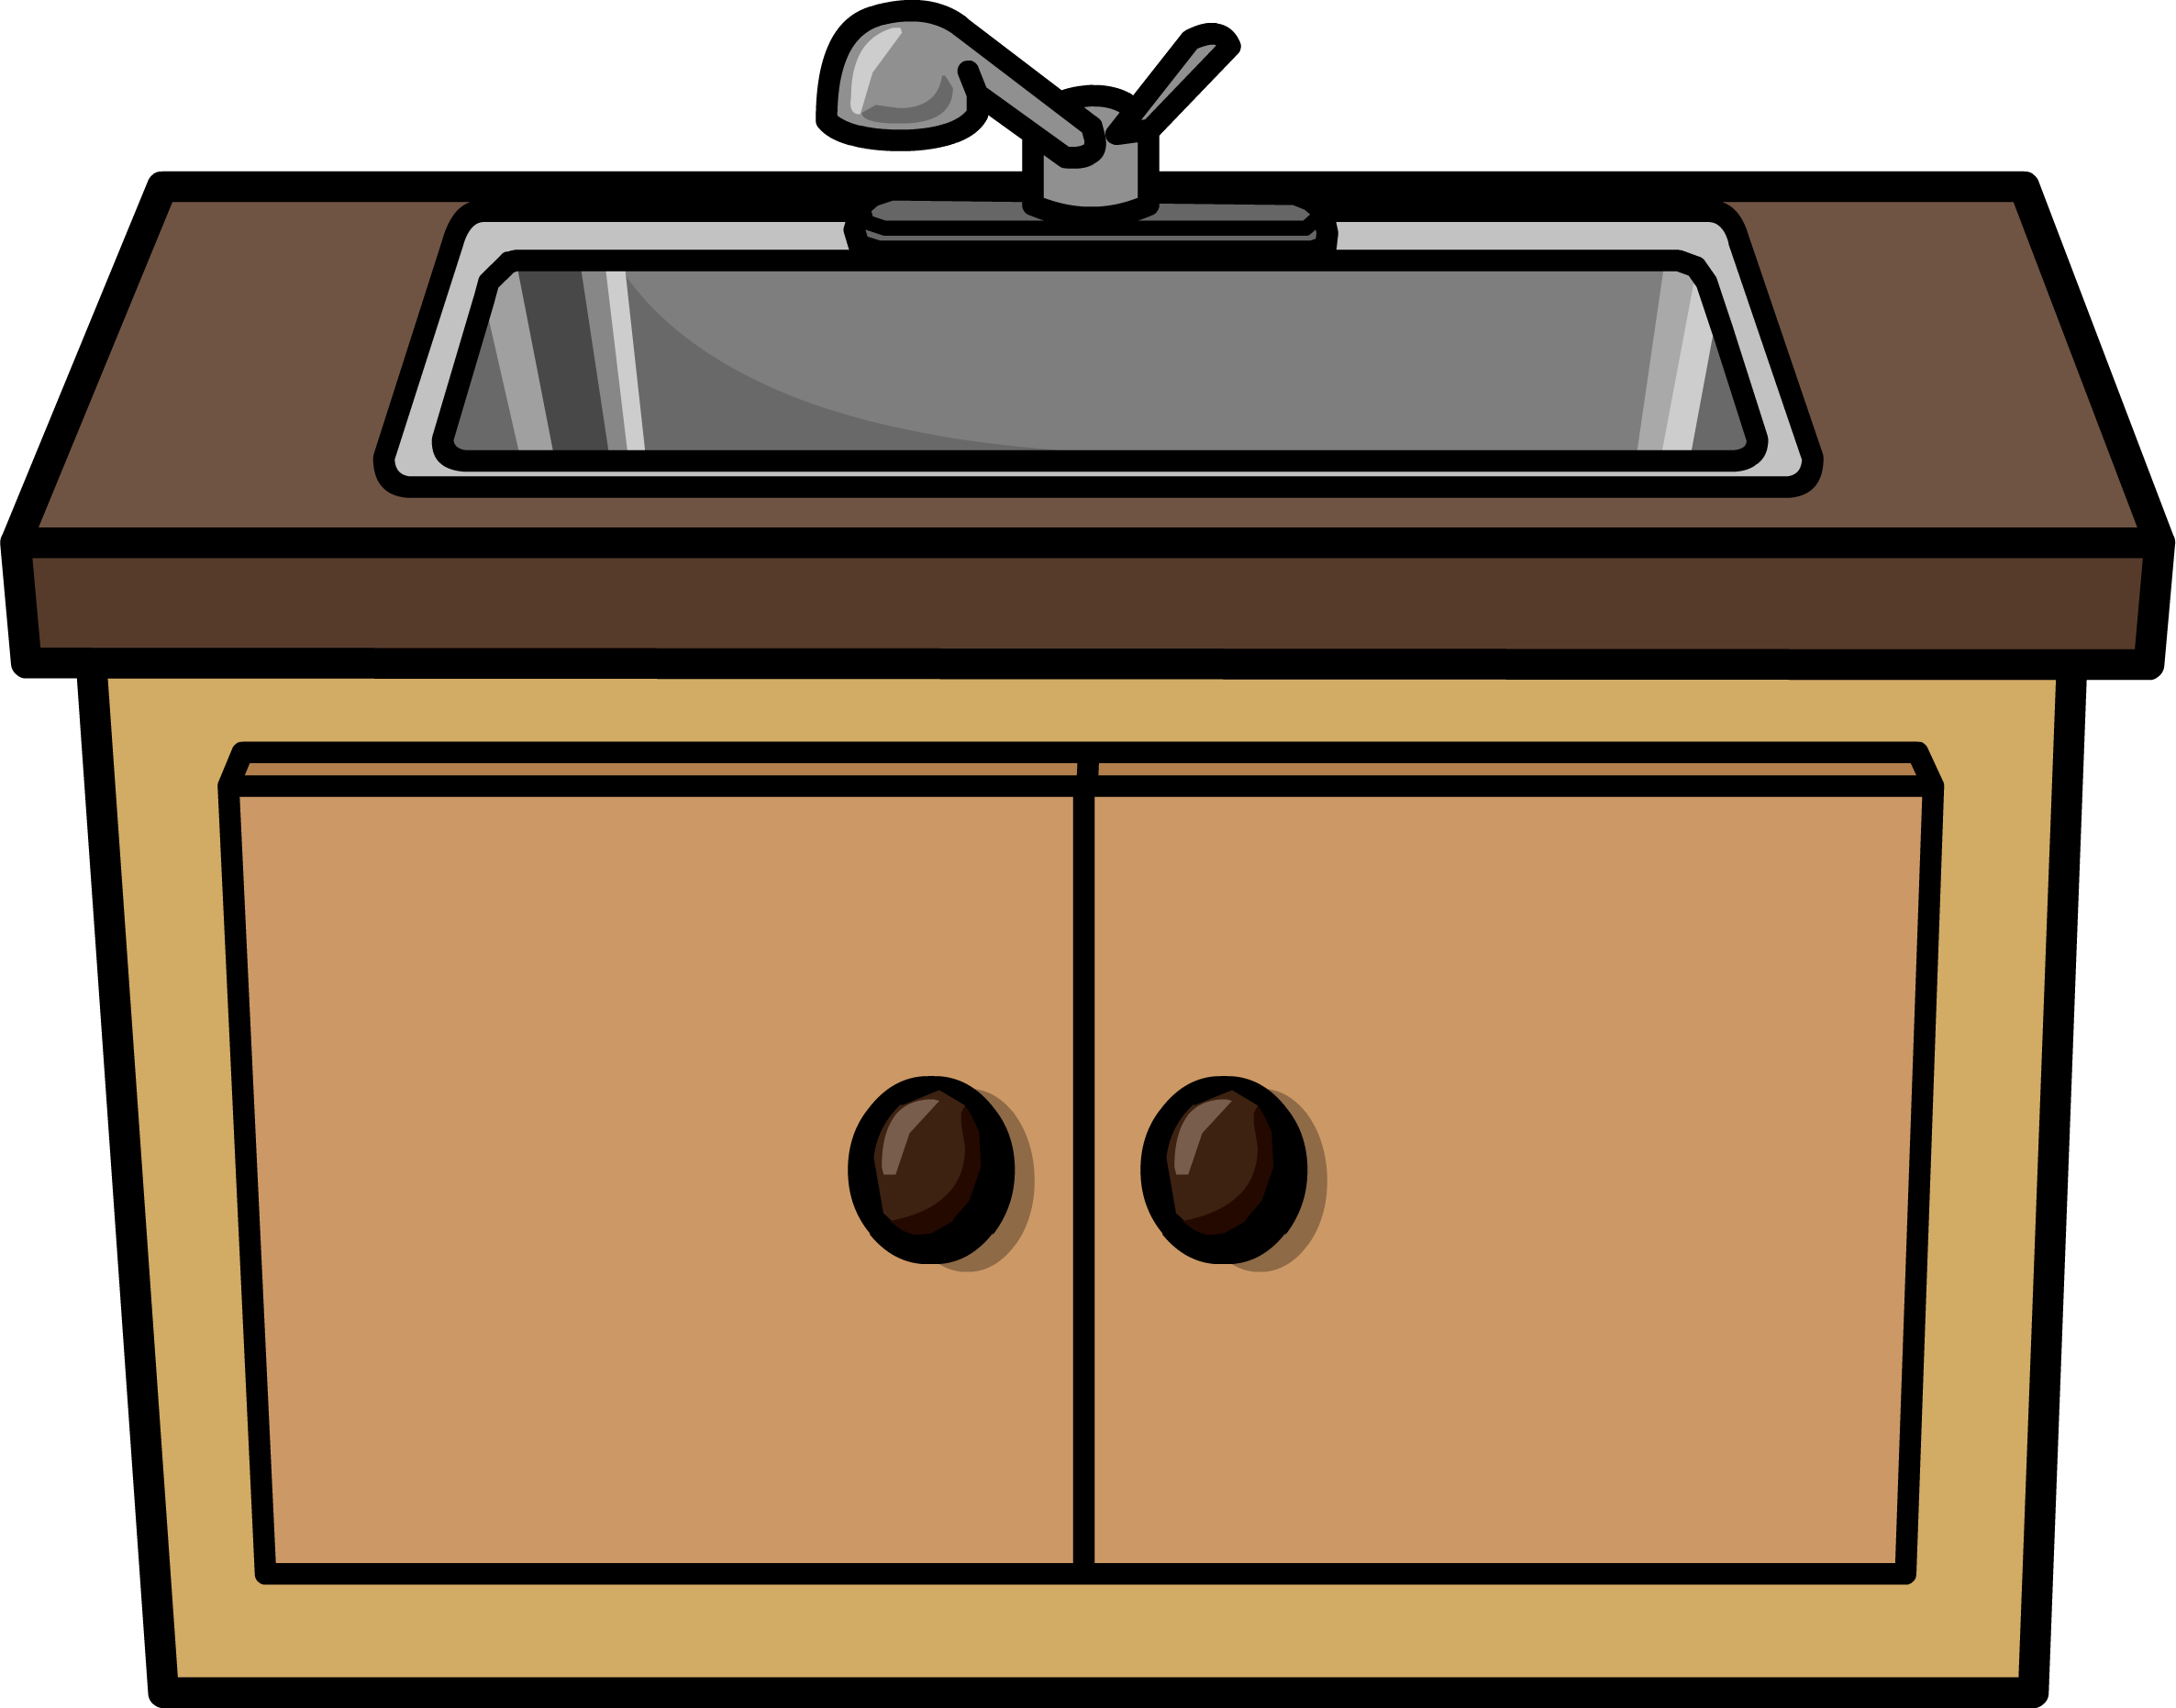 Classroom clipart sink.  collection of kitchen